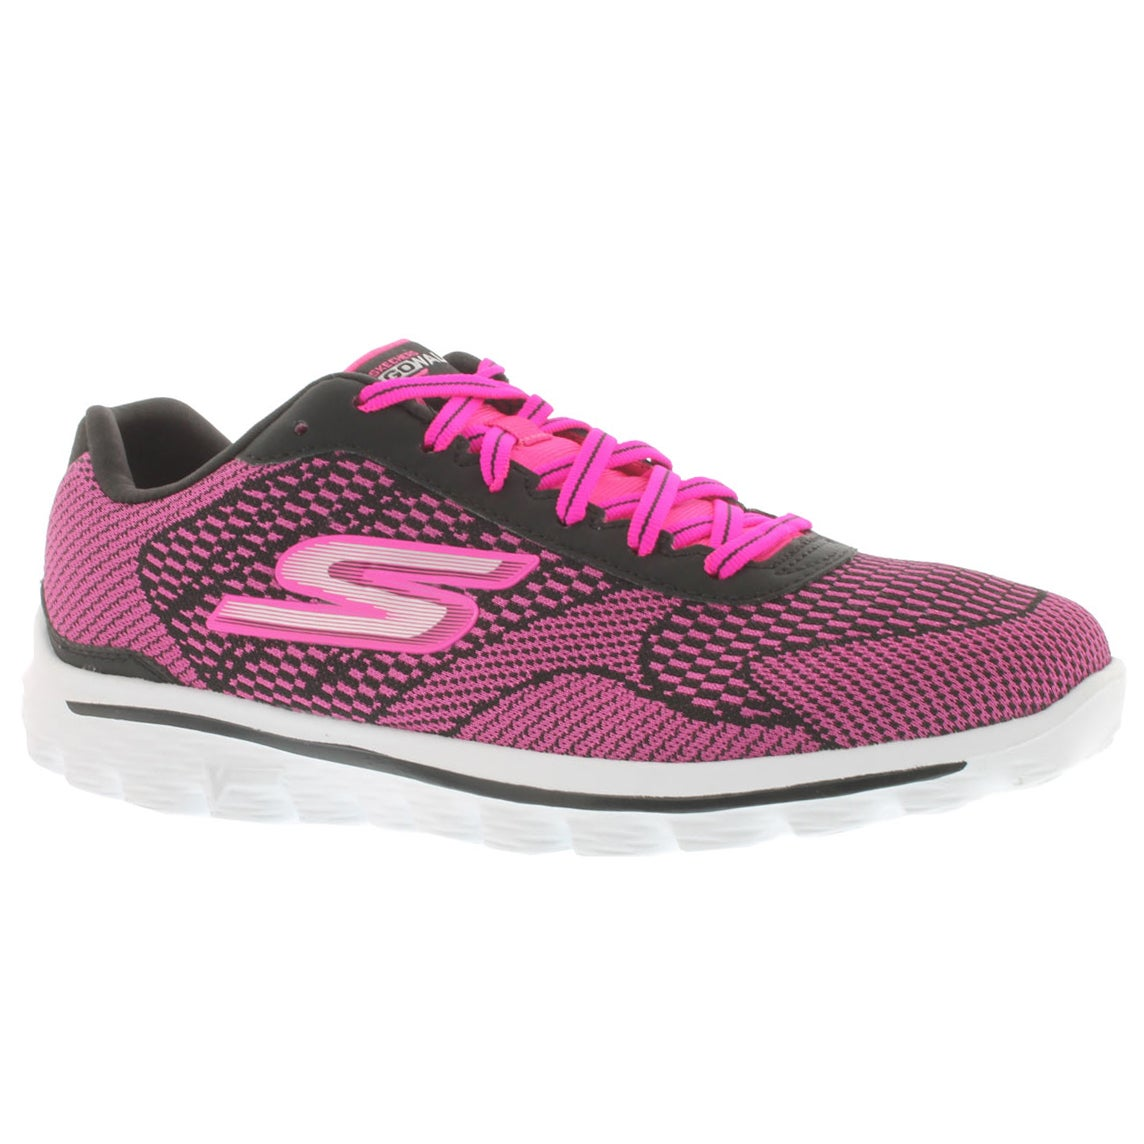 Women's GOwalk 2 FUSE black/pink lace up sneakers